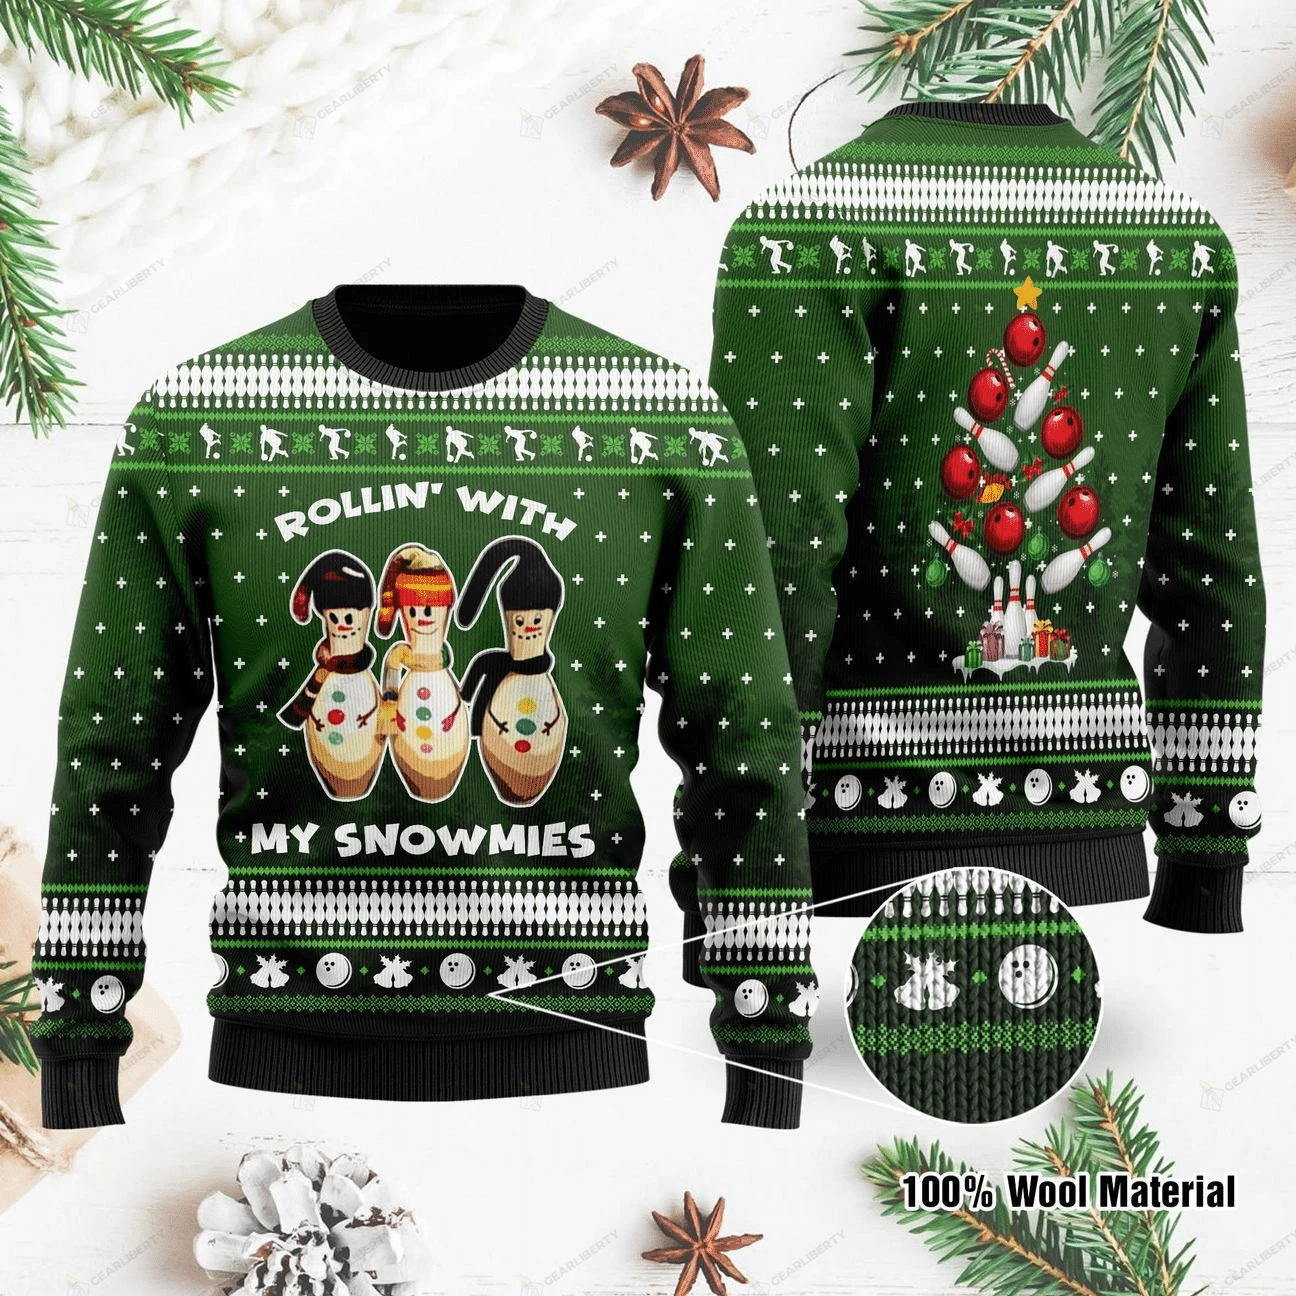 Rolling with my snowmies Christmas Sweater